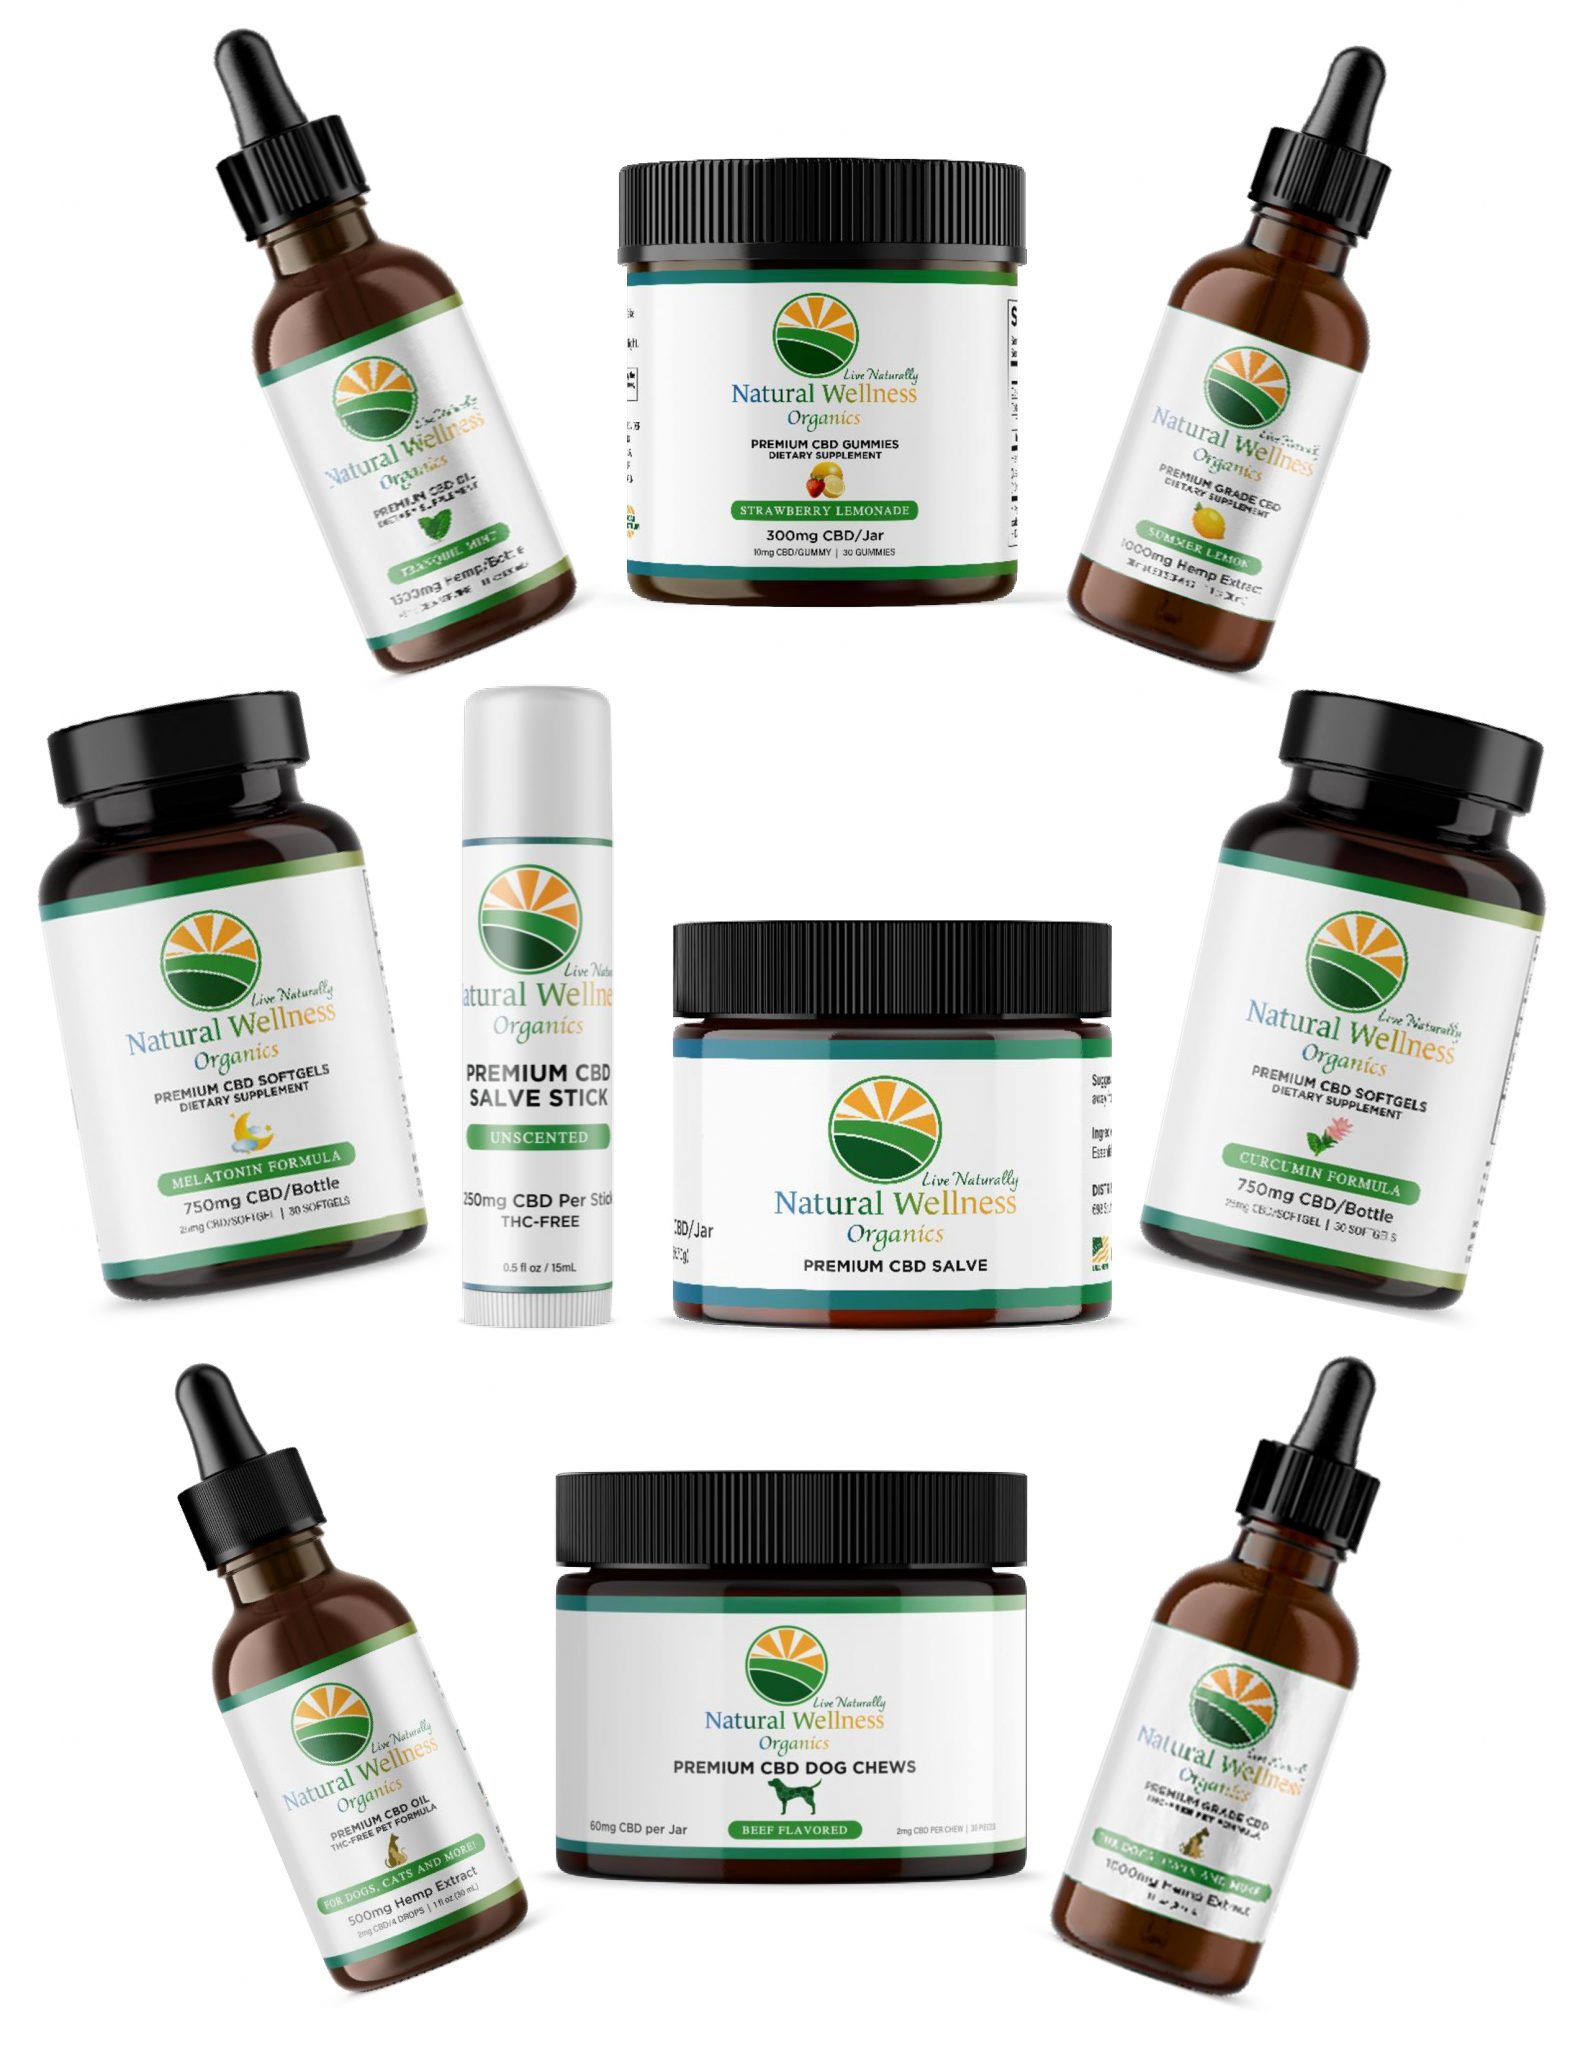 Lab Results for Natural Wellness Organics CBD Products